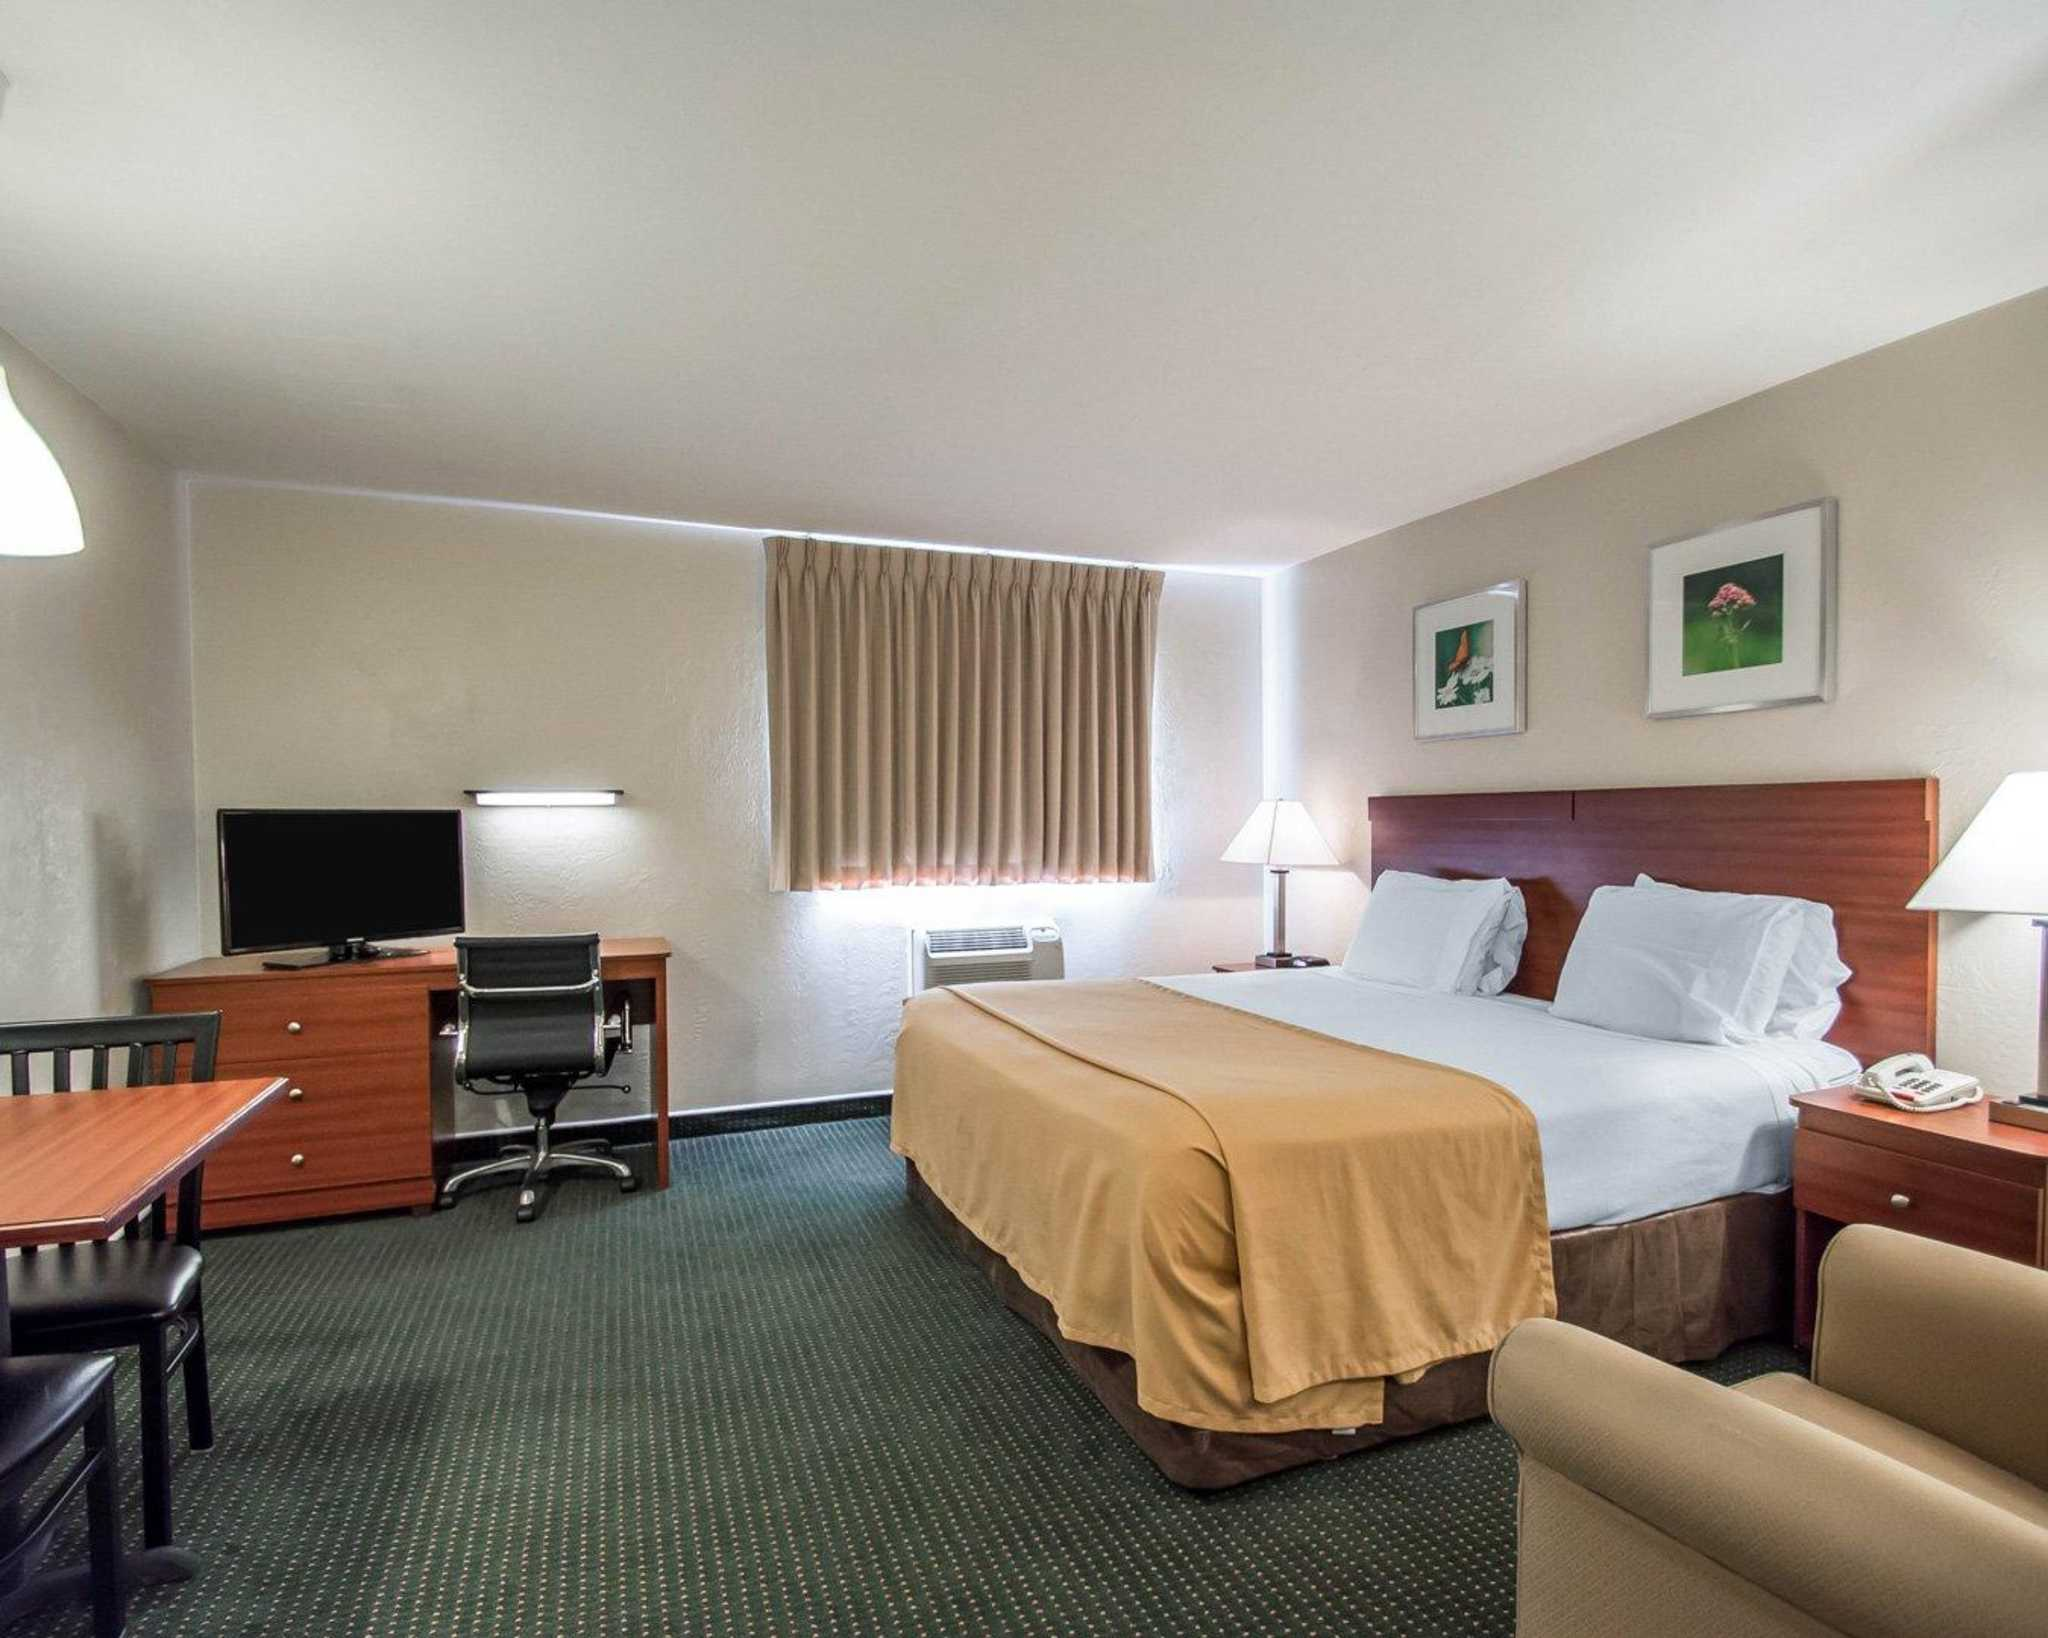 Suburban Extended Stay Hotel image 13